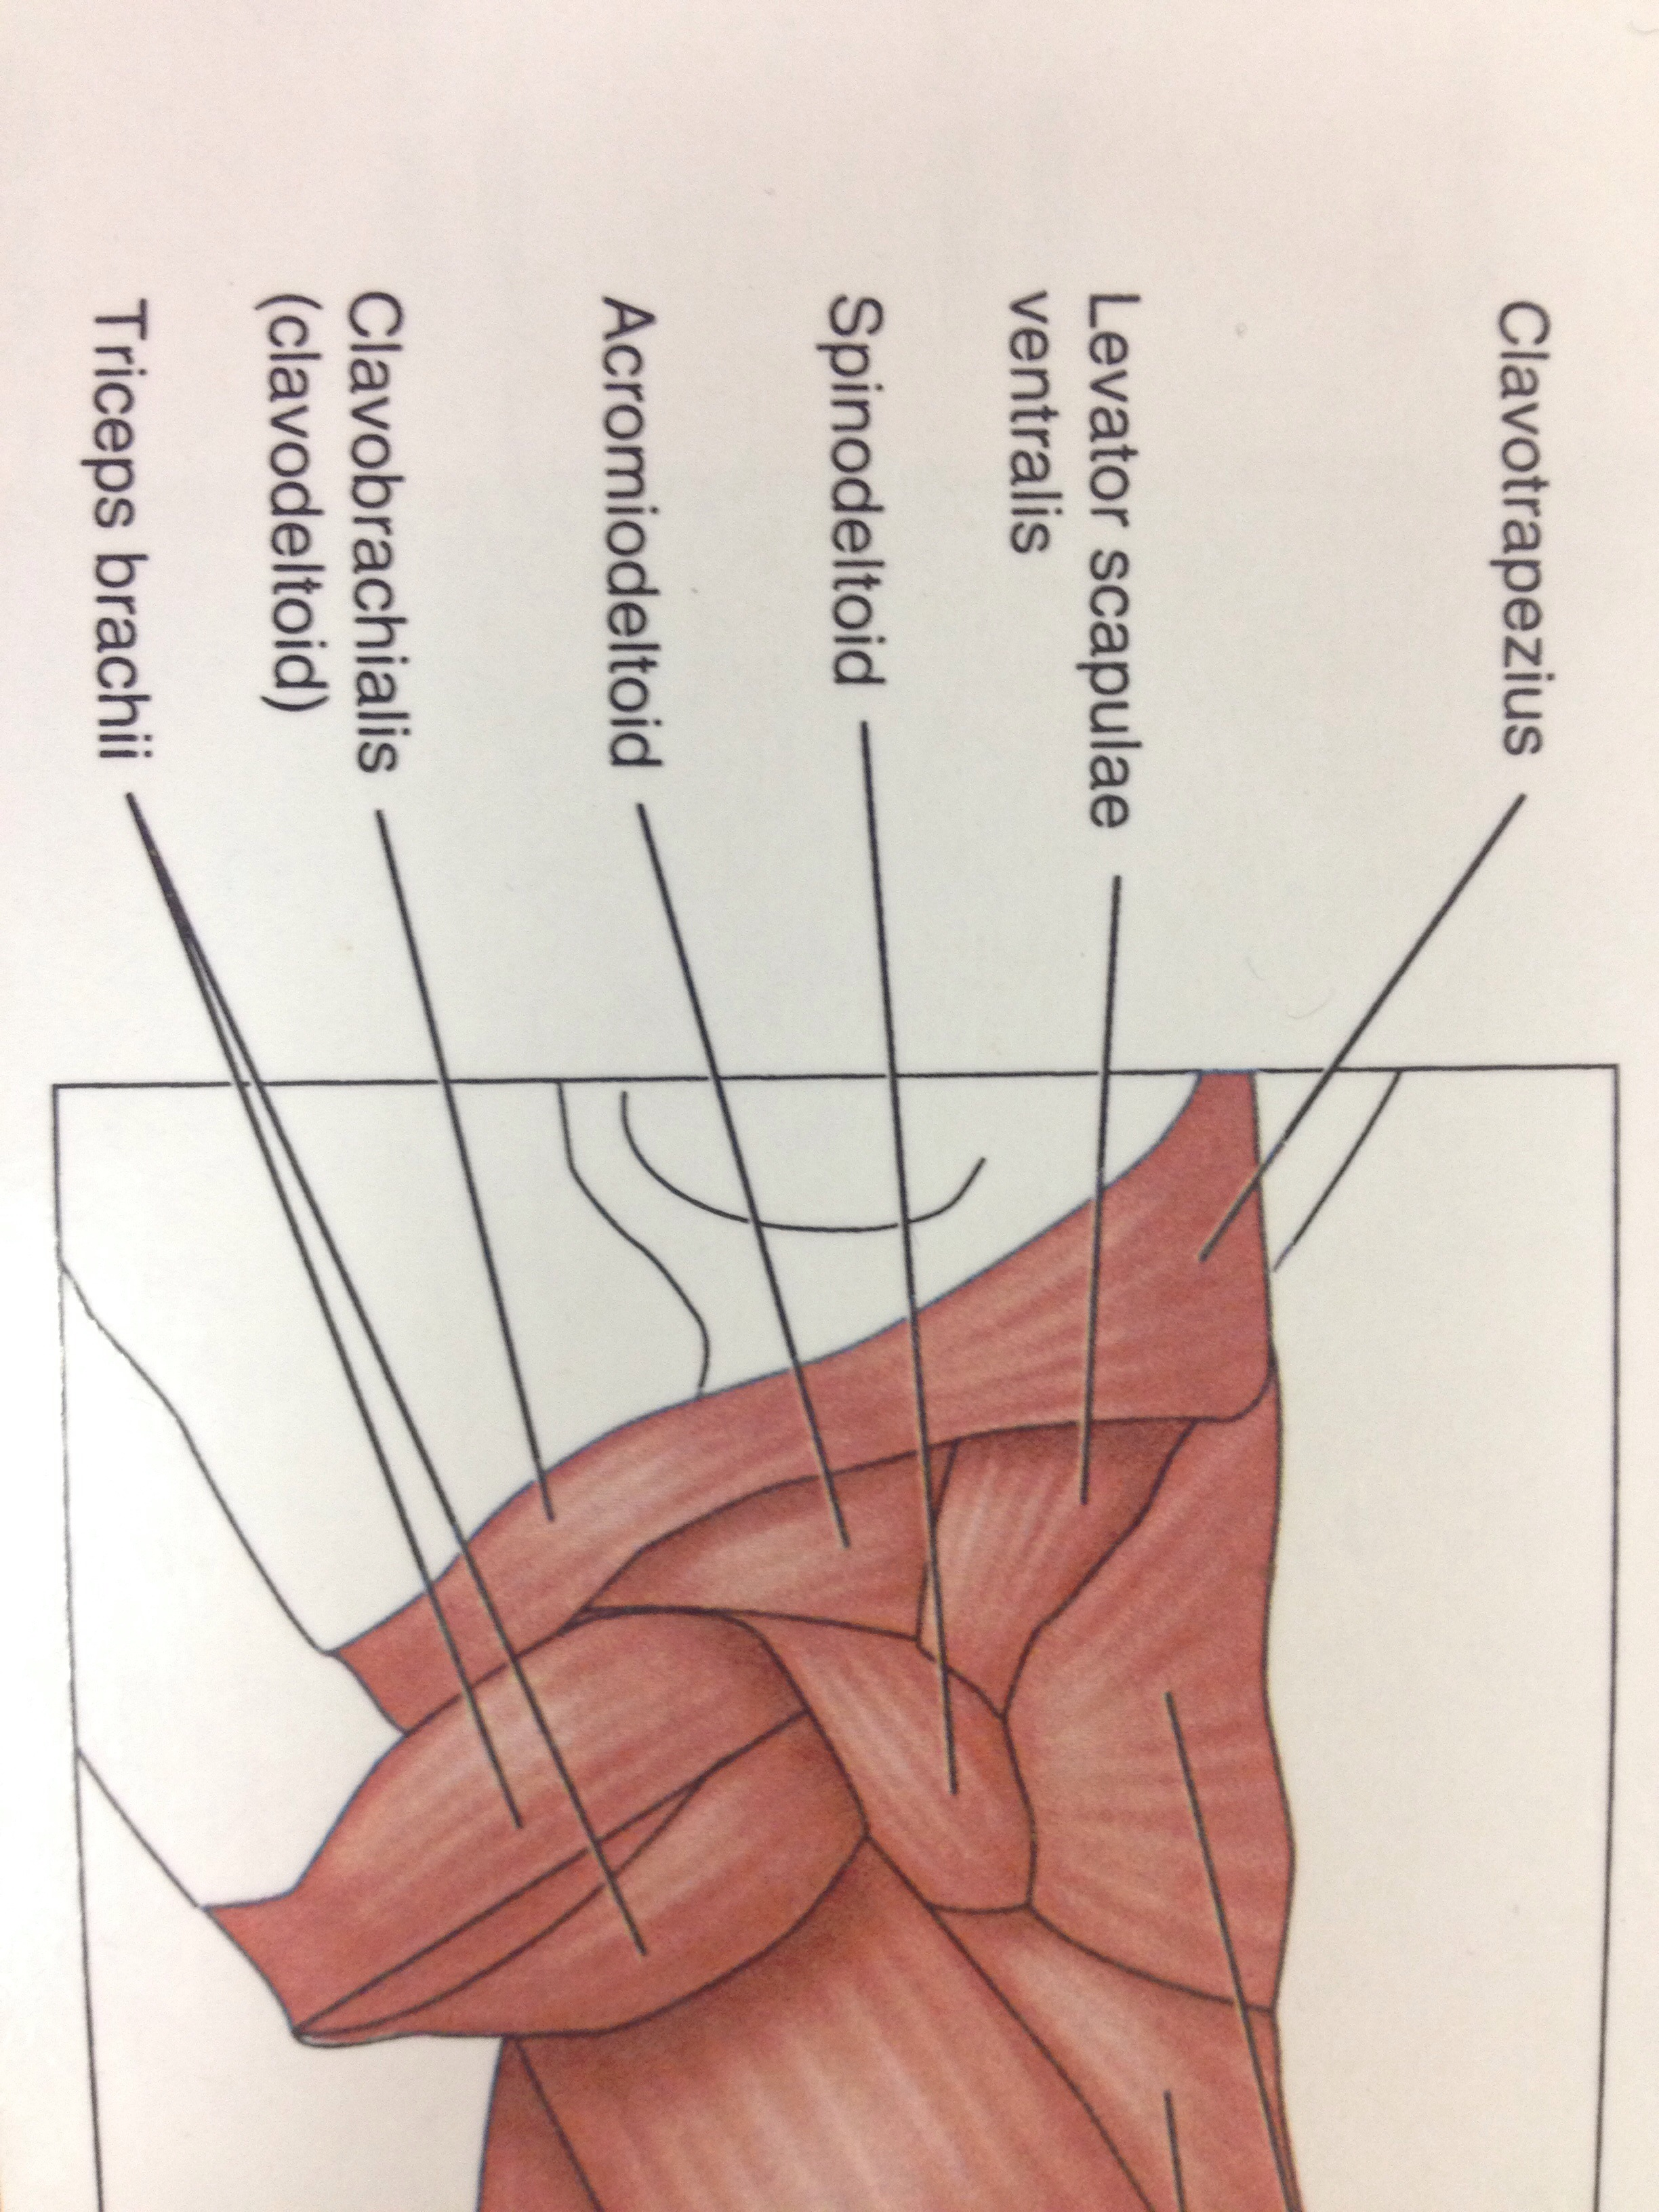 cat muscle anatomy diagram 99 ford explorer radio wiring muscles of the forearm and arm back shoulder